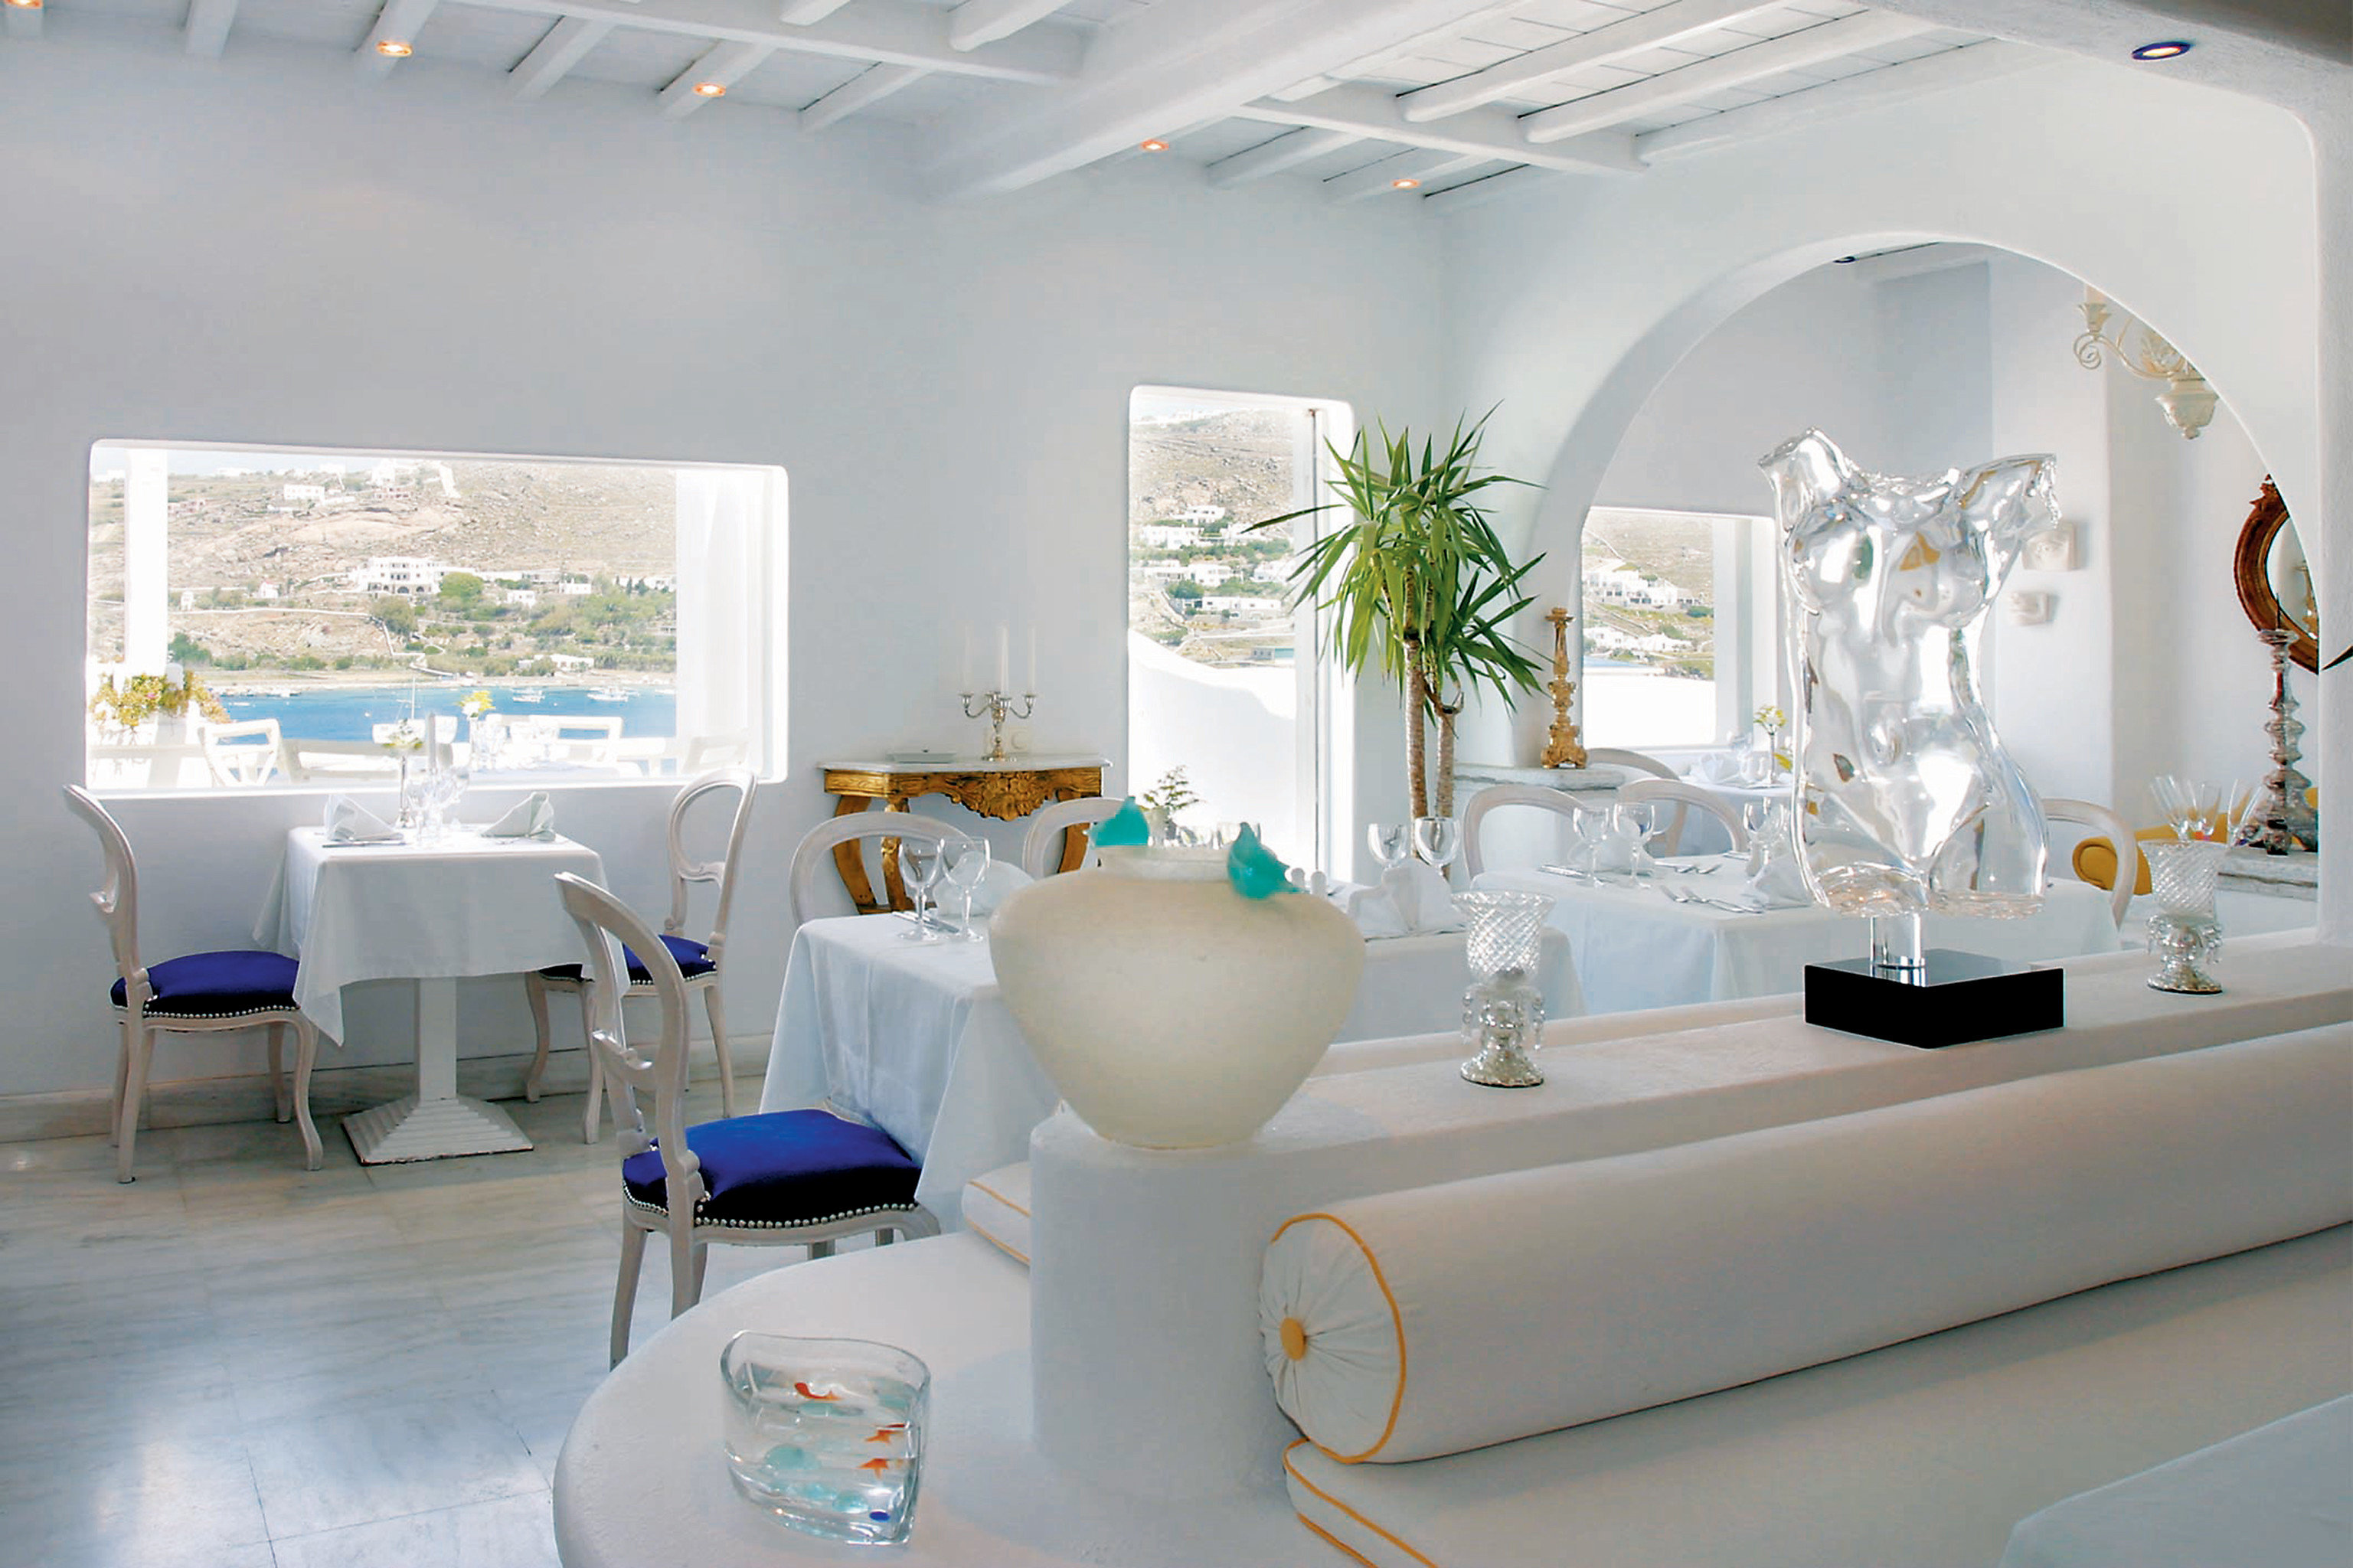 Boutique Hotels Festivals + Events Hotels Trip Ideas living room waiting room Lobby